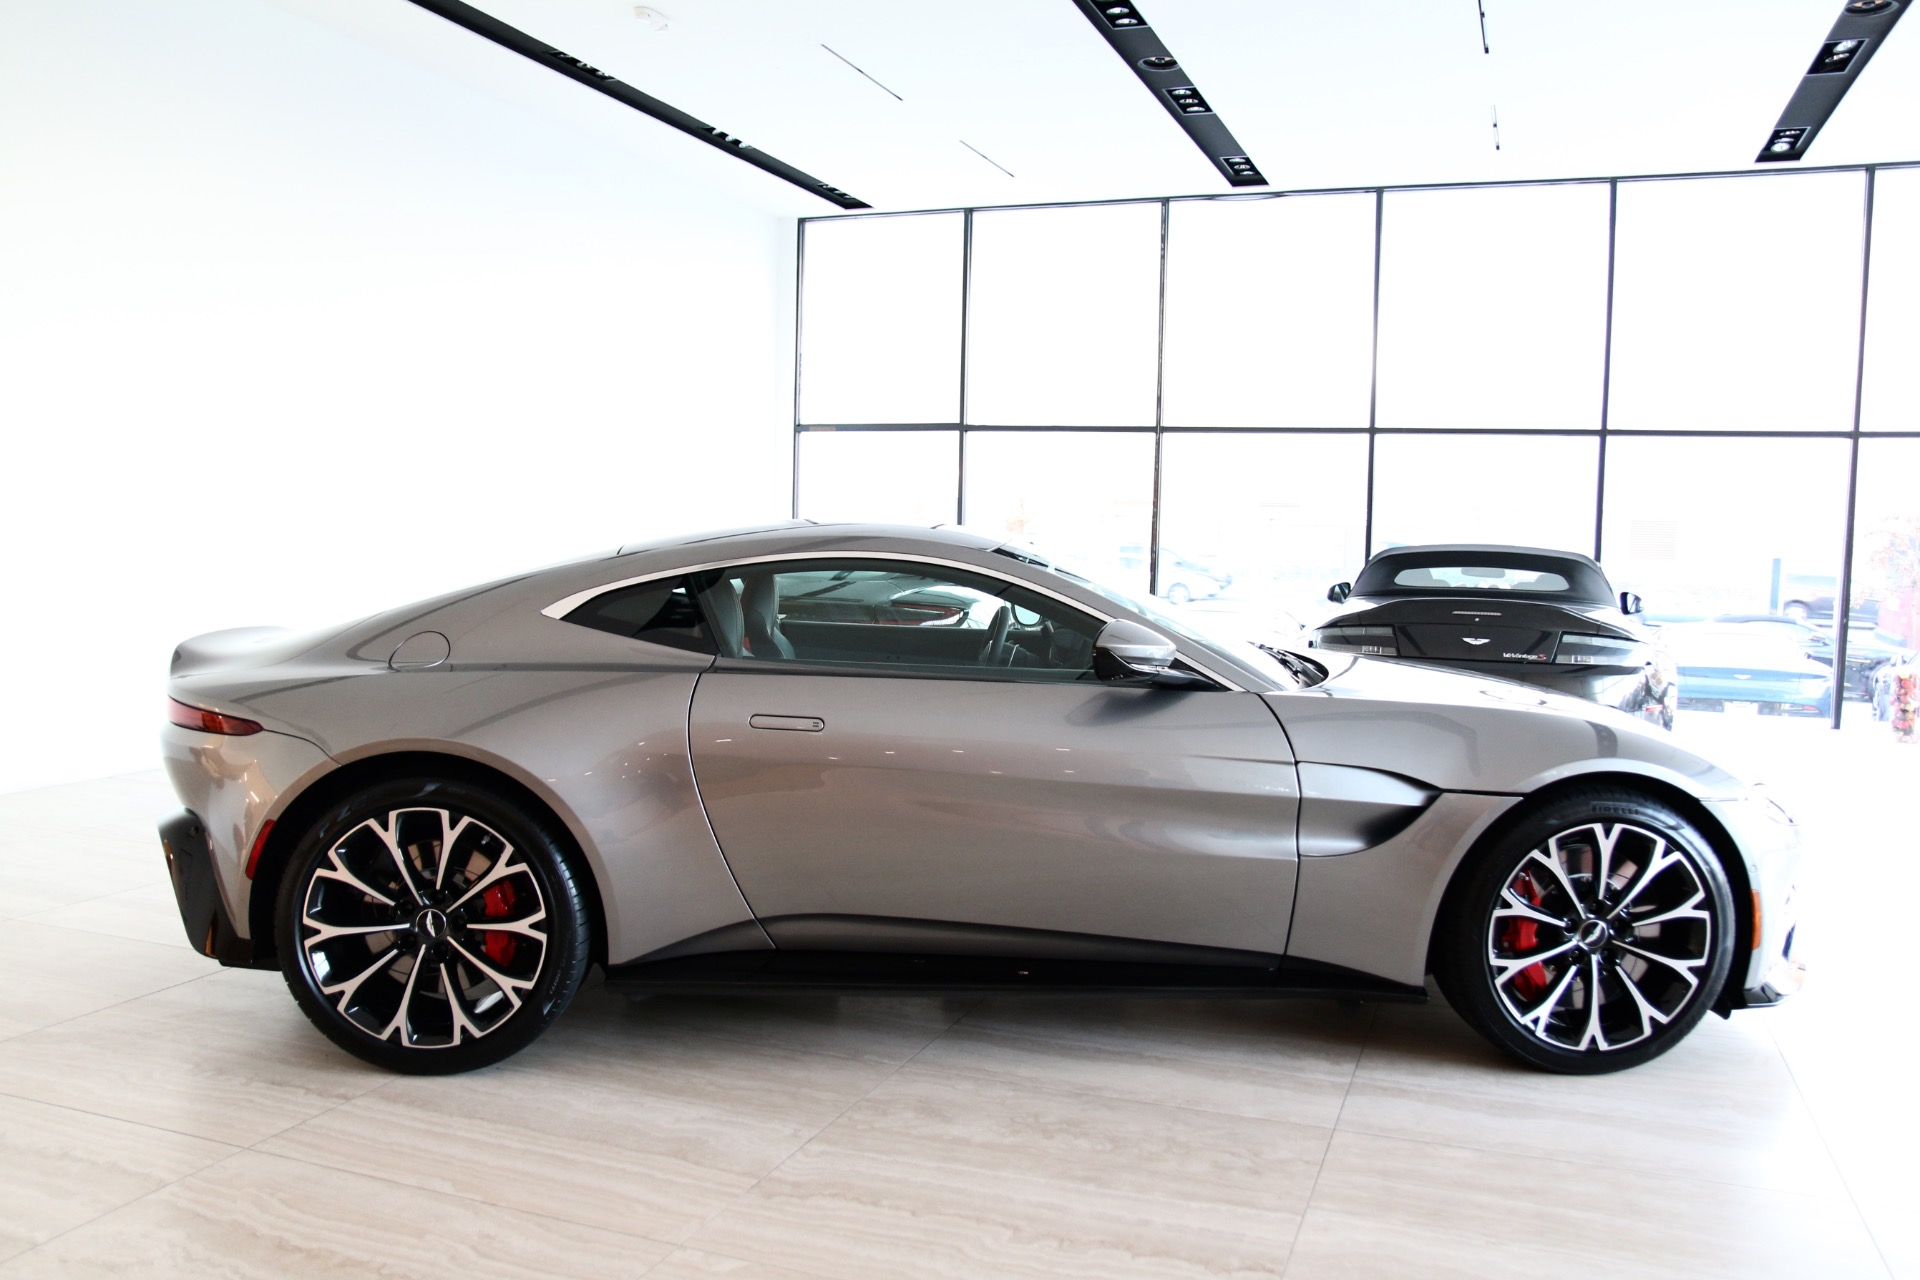 Aston Martin Vantage Taking Orders Stock NX For Sale - Aston martin vantage maintenance